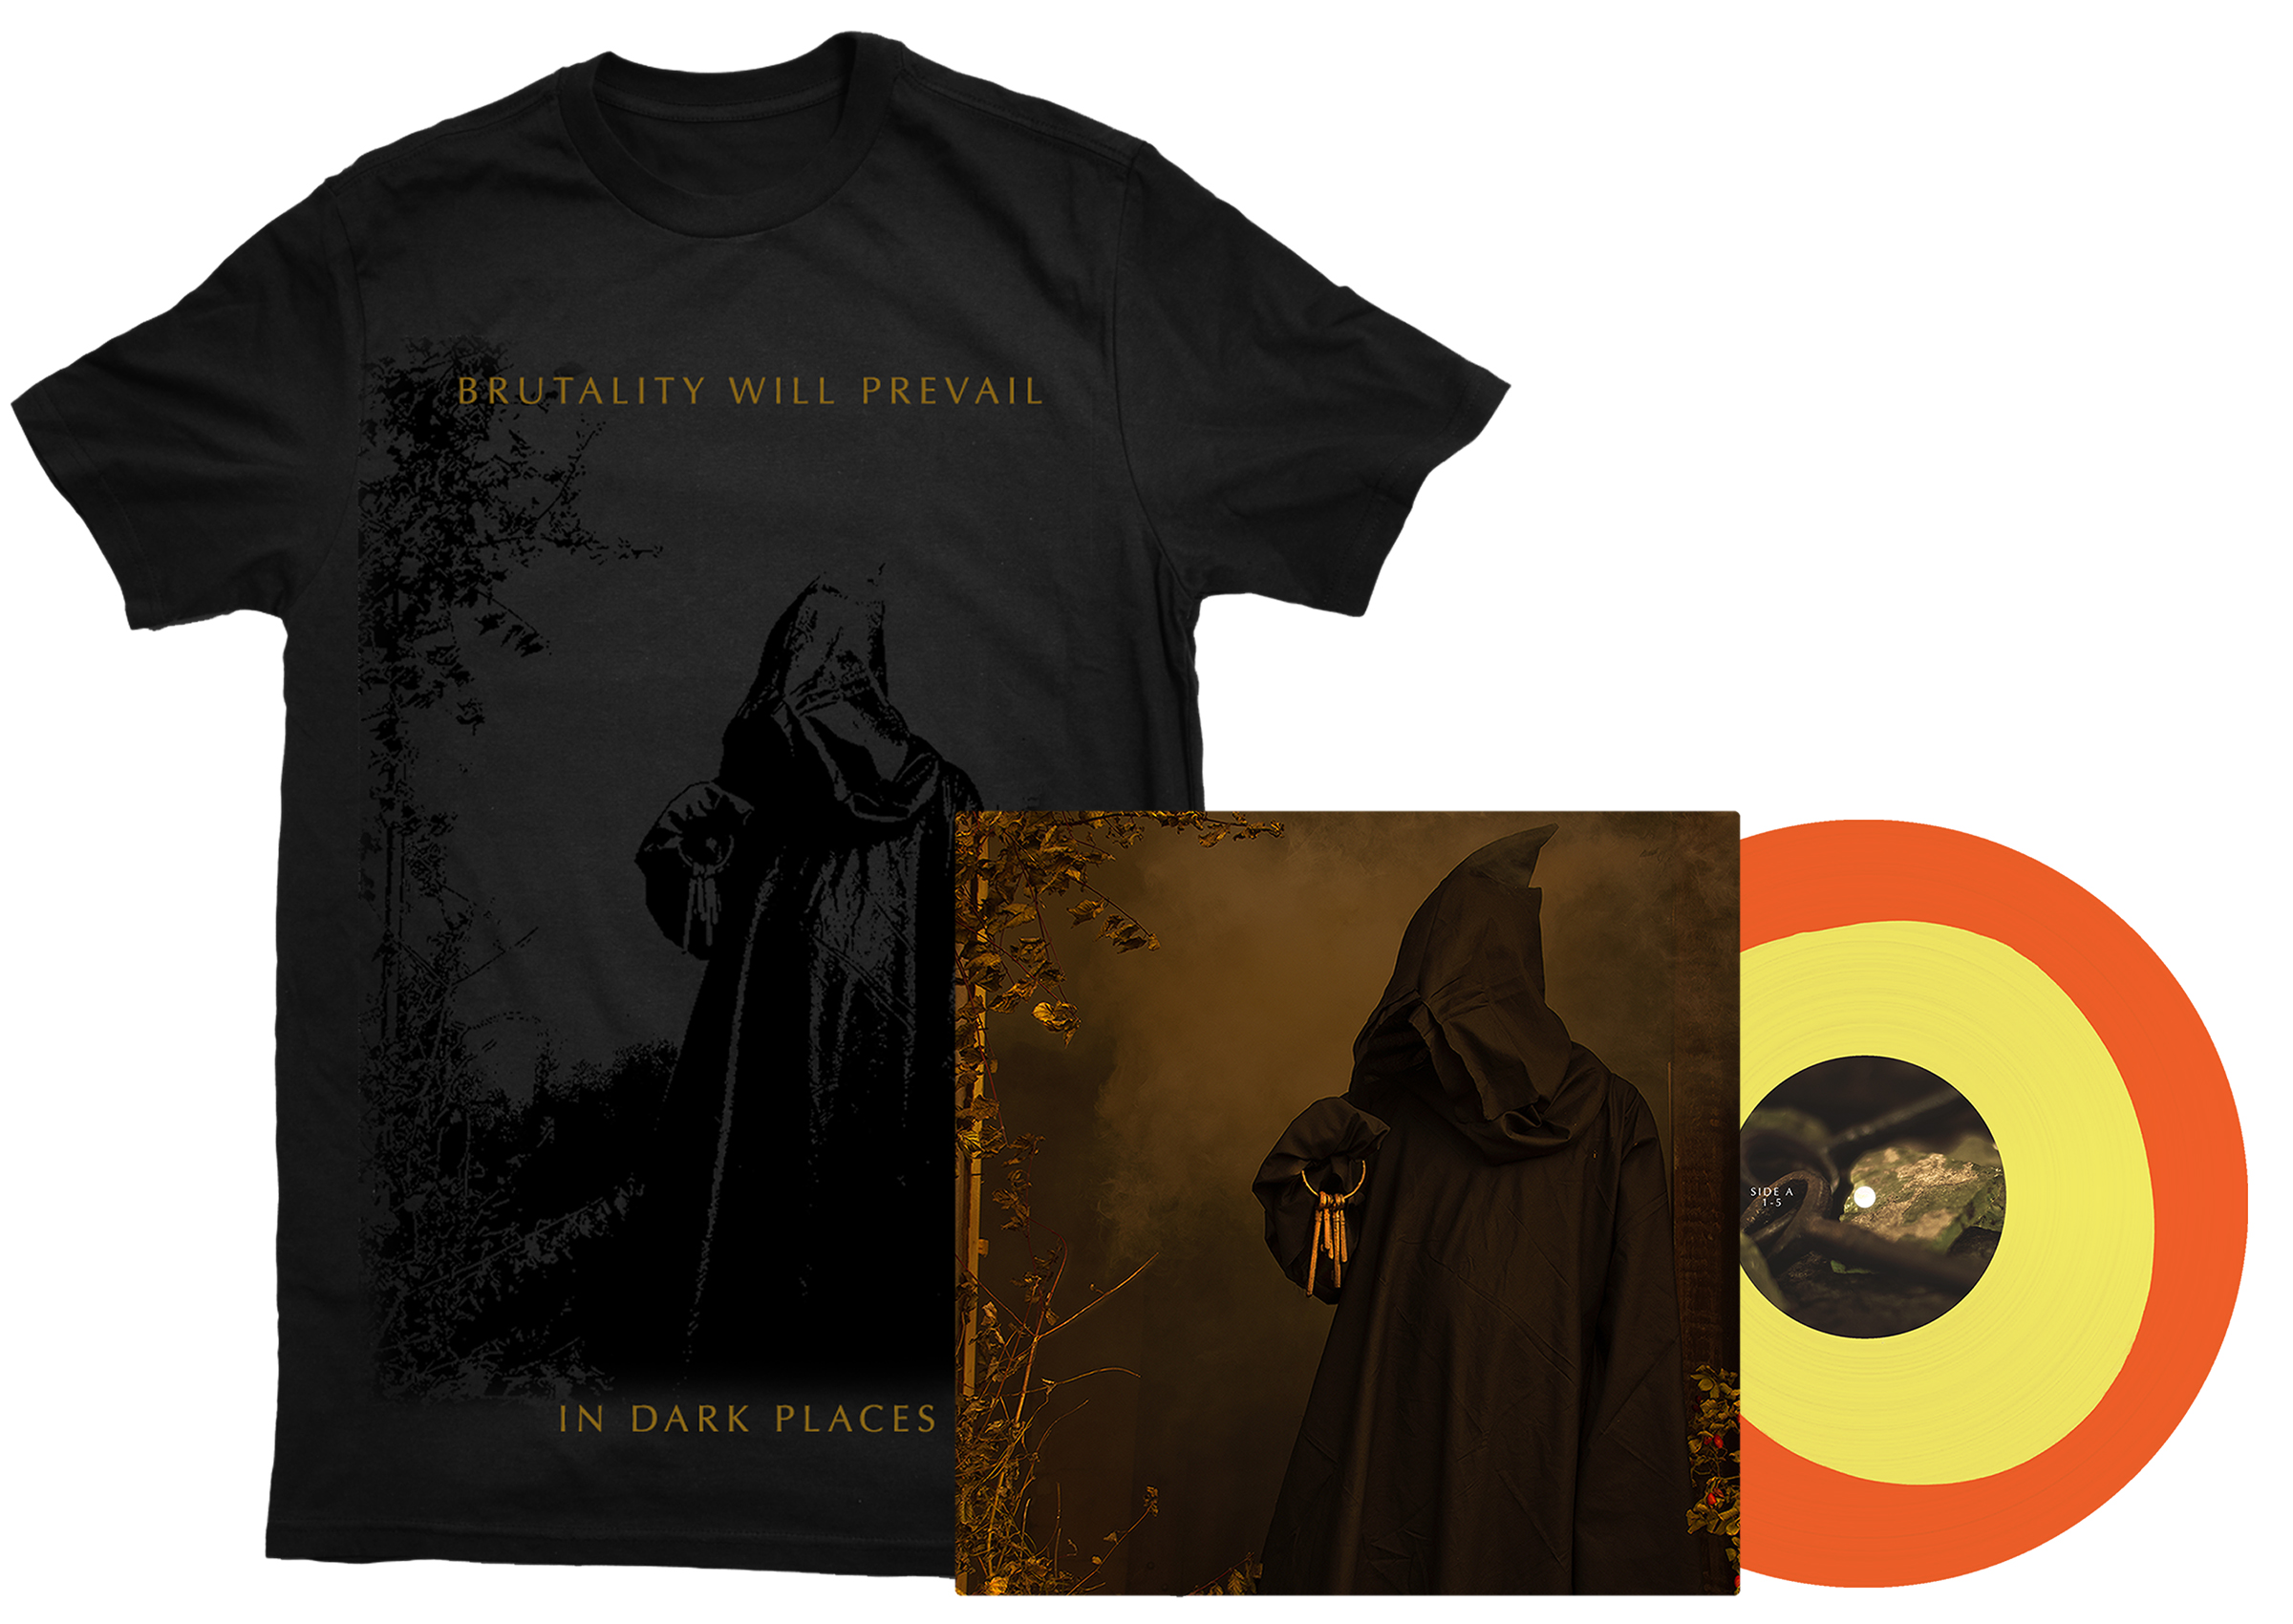 Brutality Will Prevail - In Dark Places shirt + LP